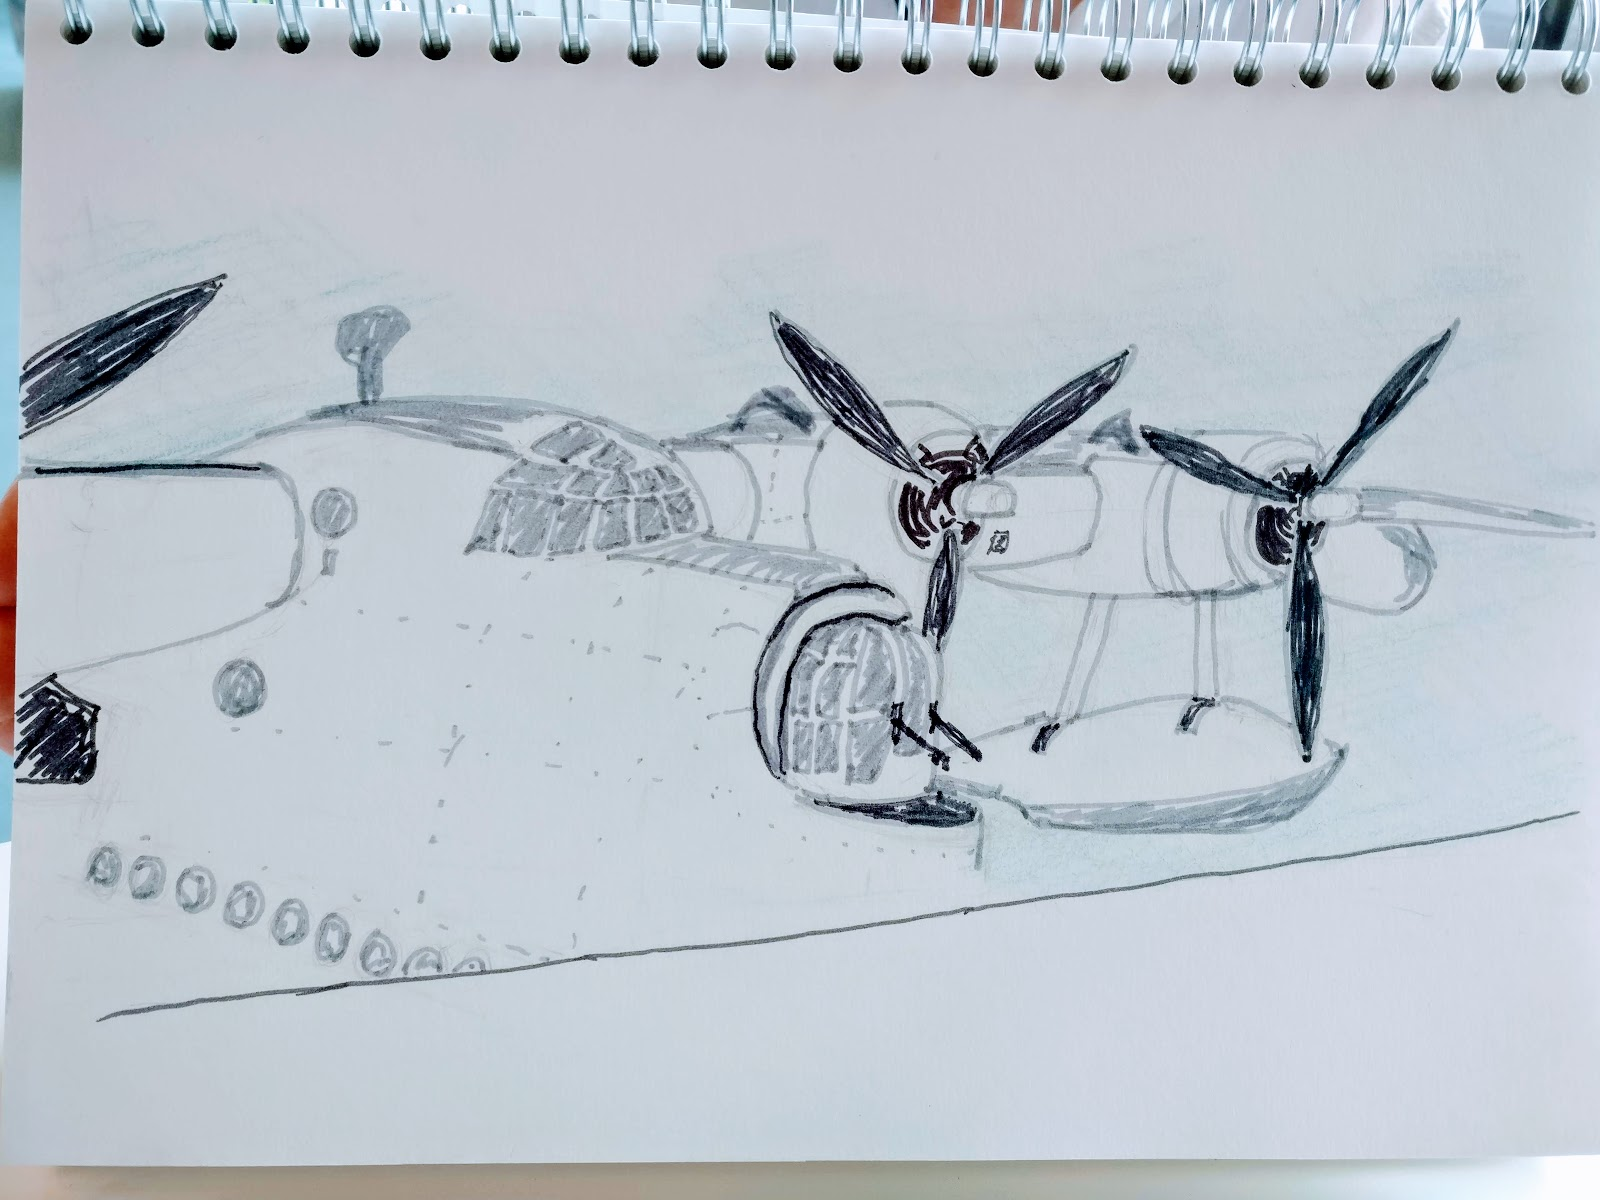 margaret-cooter: Drawing Tuesday - RAF Museum